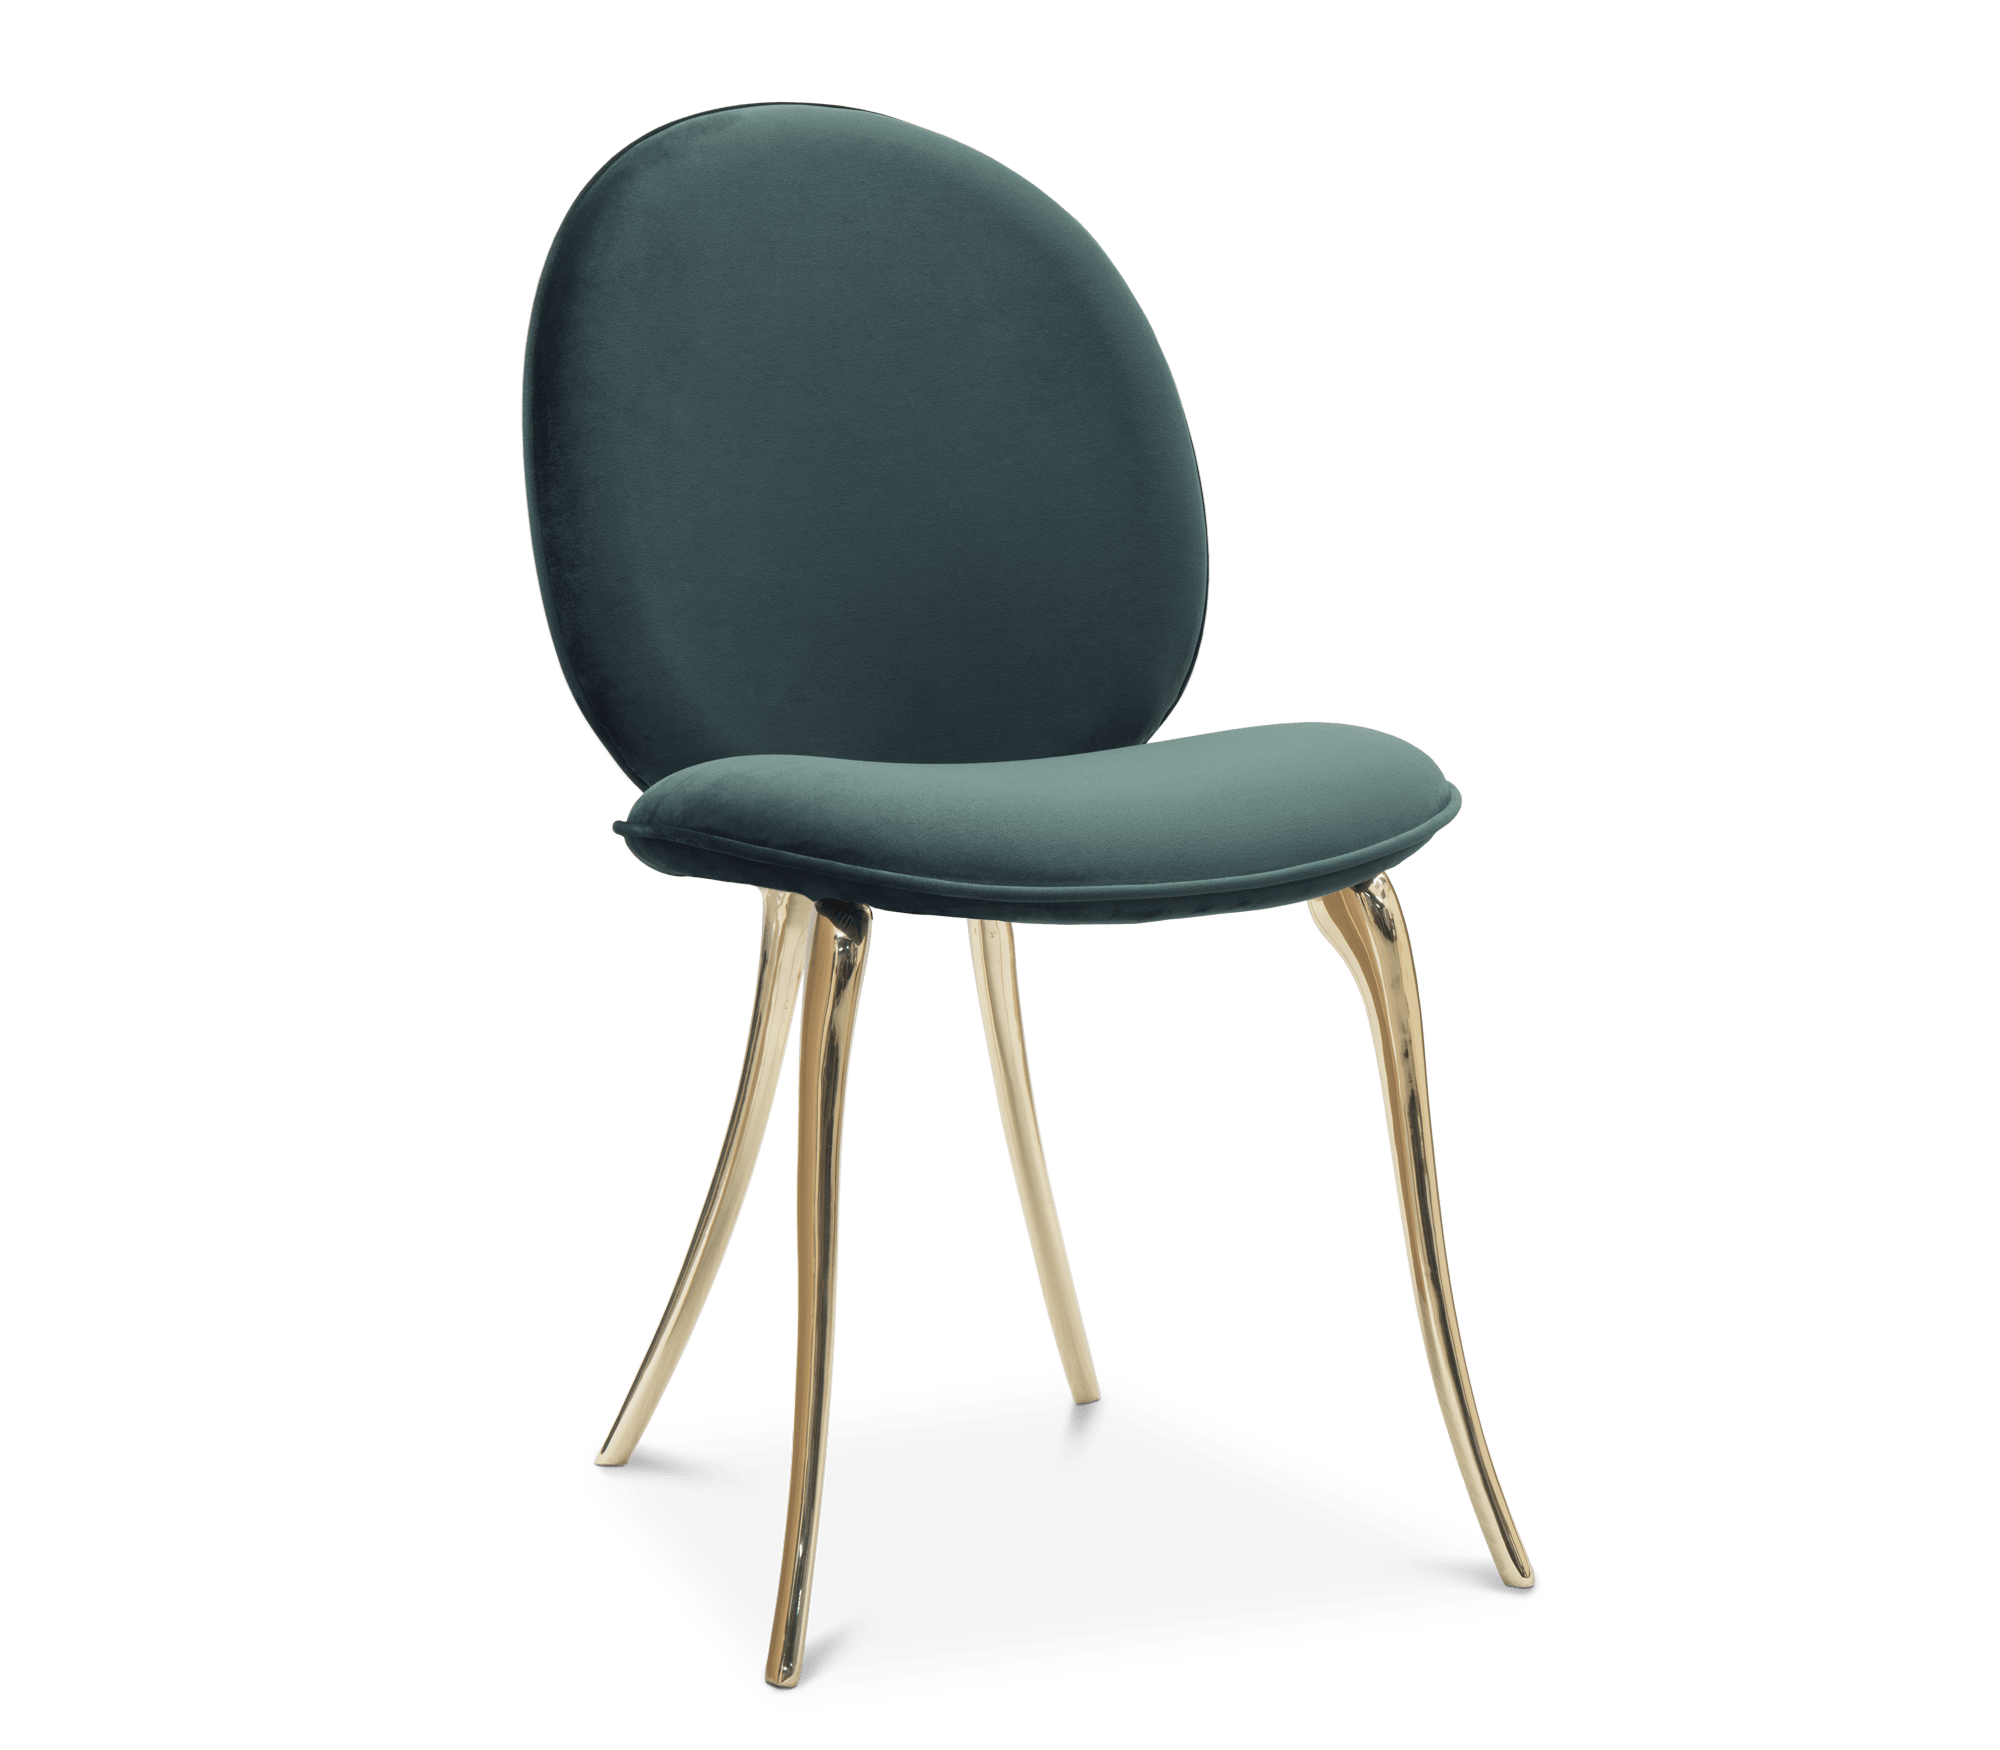 Soleil Chair by Boca do Lobo